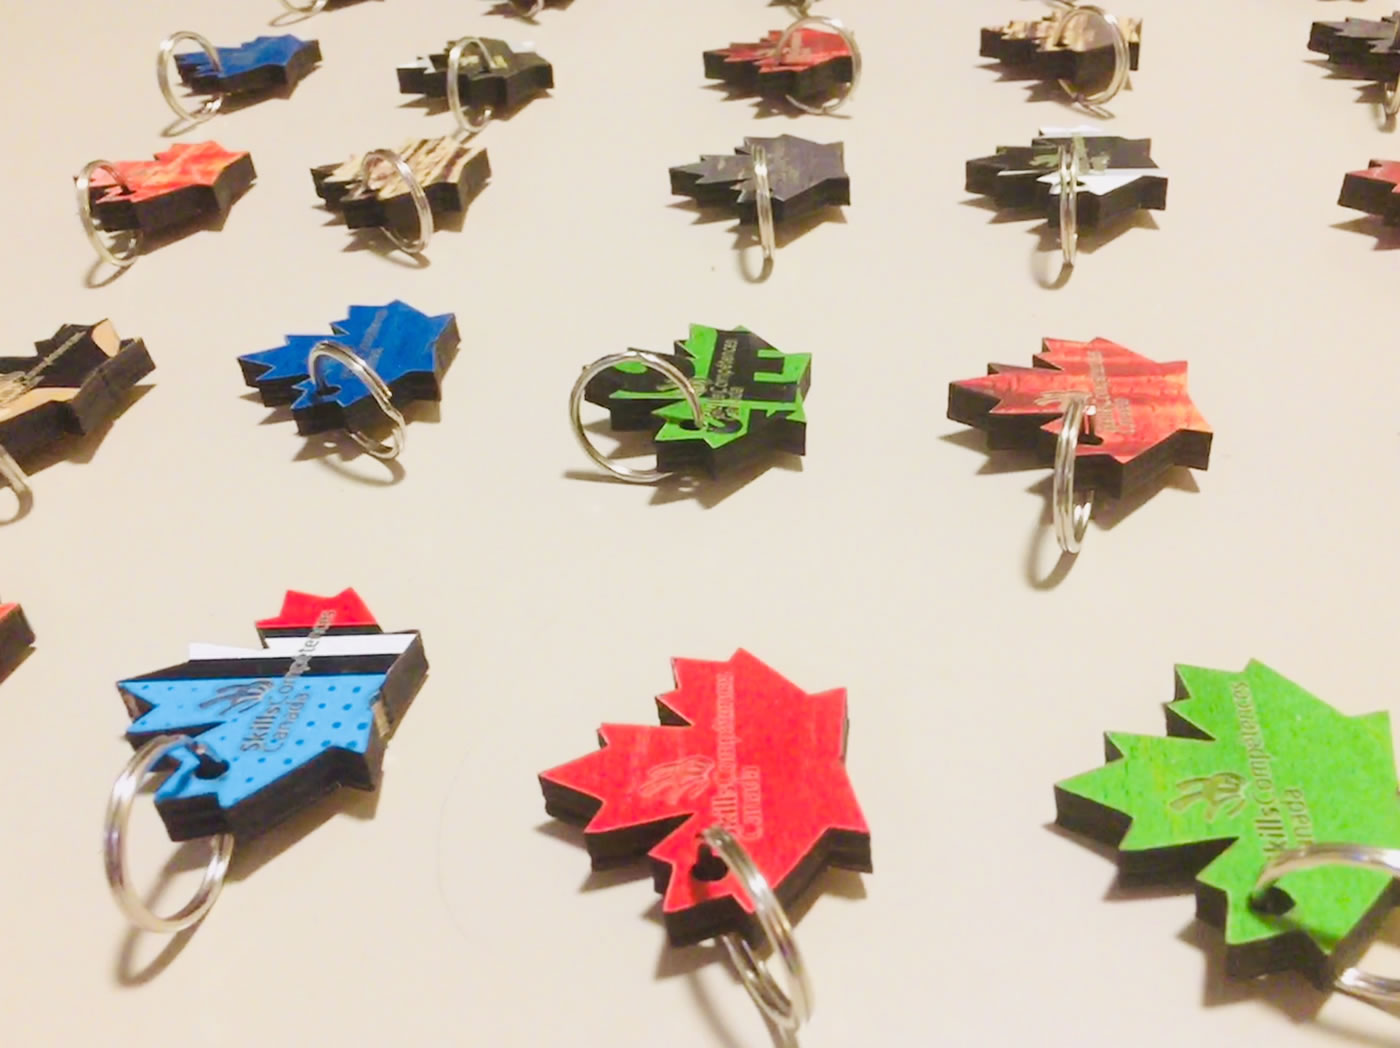 Custom keychains made from recycled skateboards